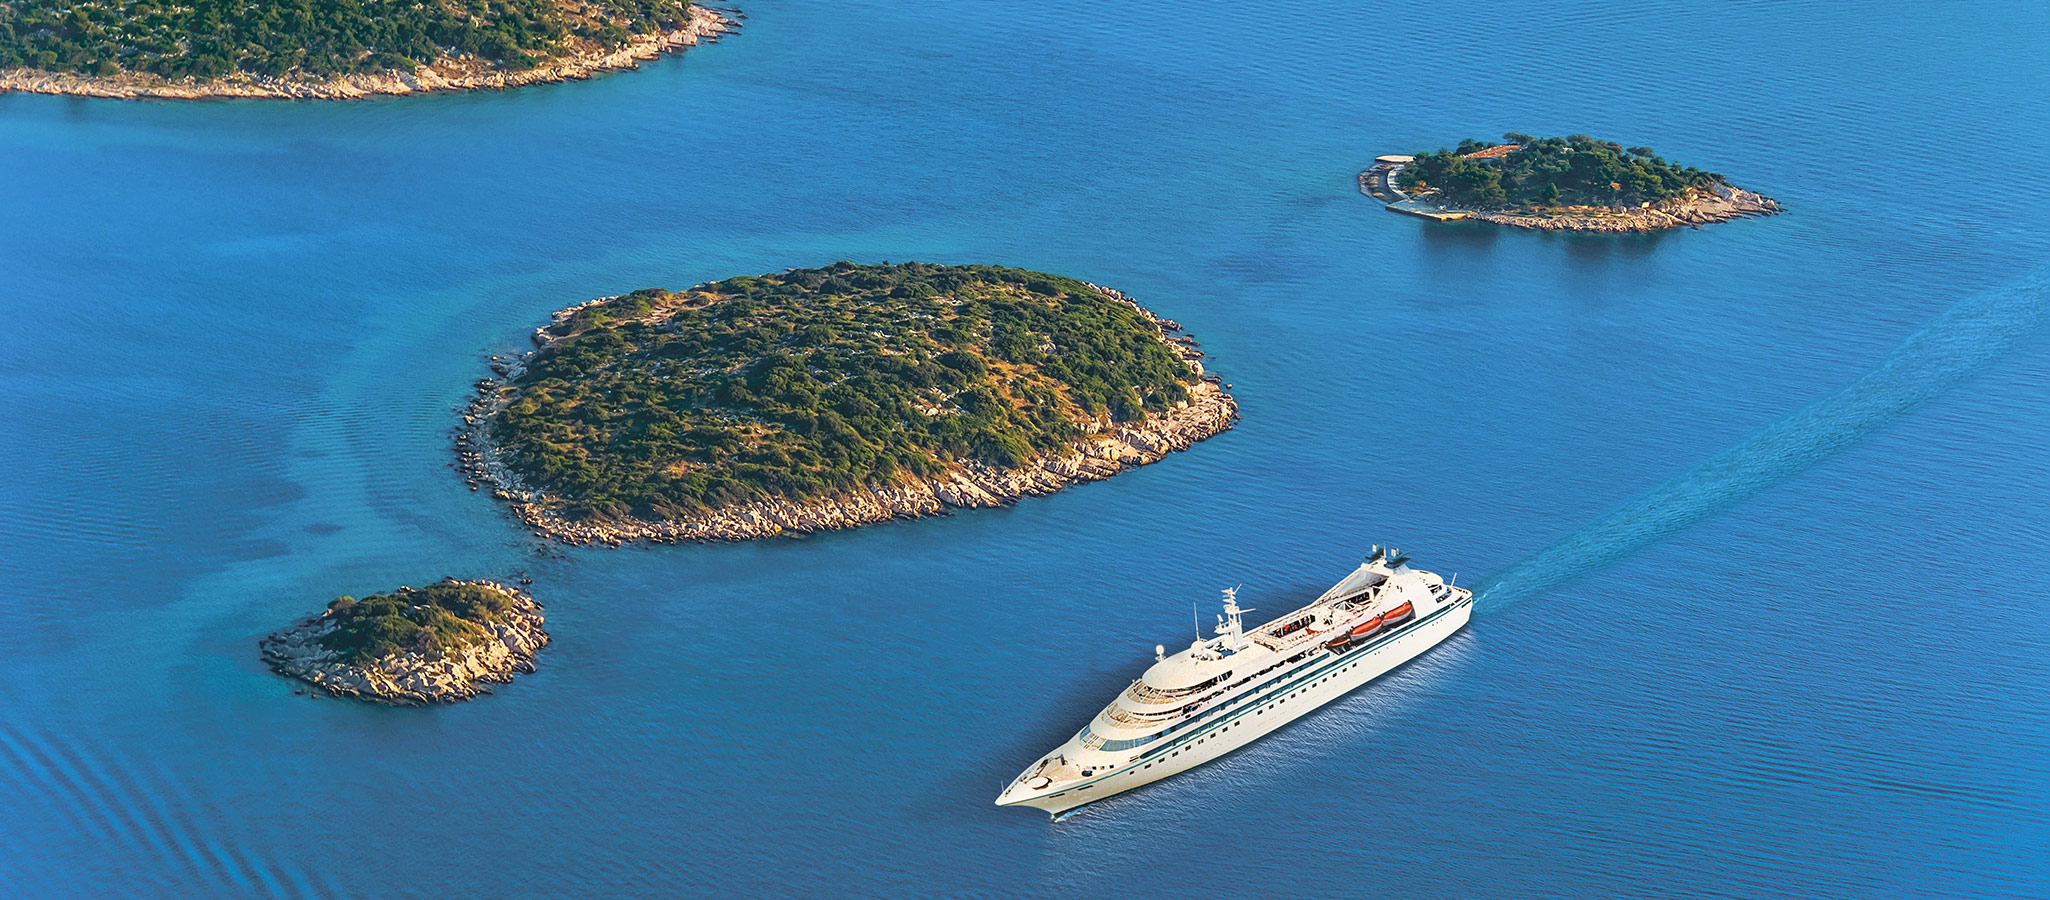 Cruise ships for up to 200 passengers are called boutique ships. They are eminently suitable for incentives with an unusual sea and land program.